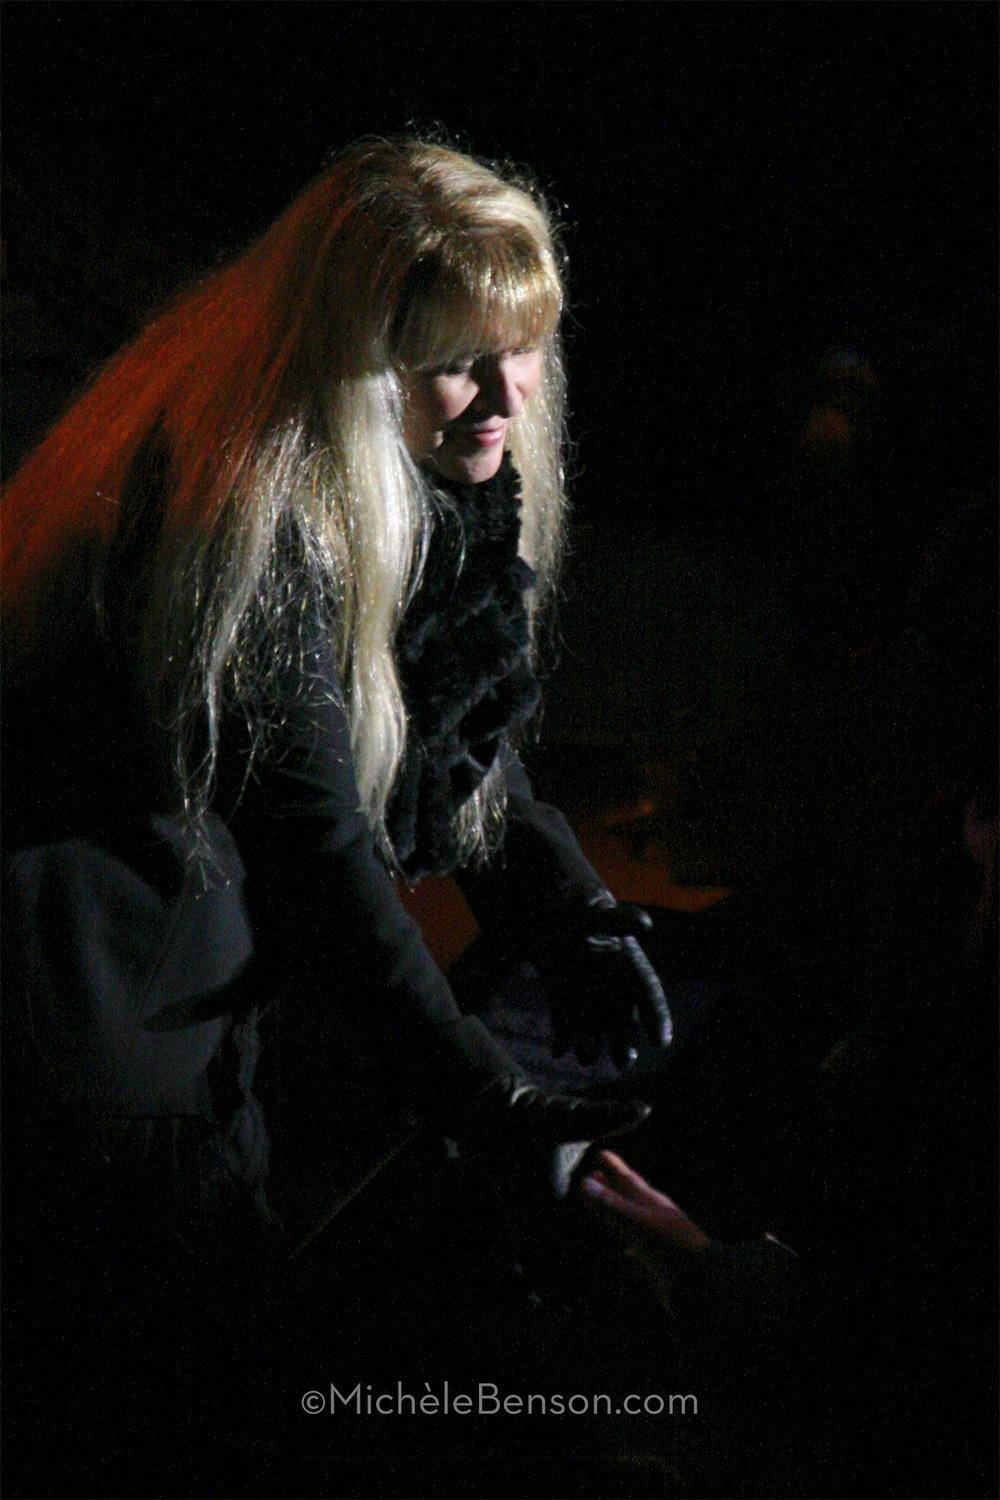 Stevie Nicks at the Mountain Winery